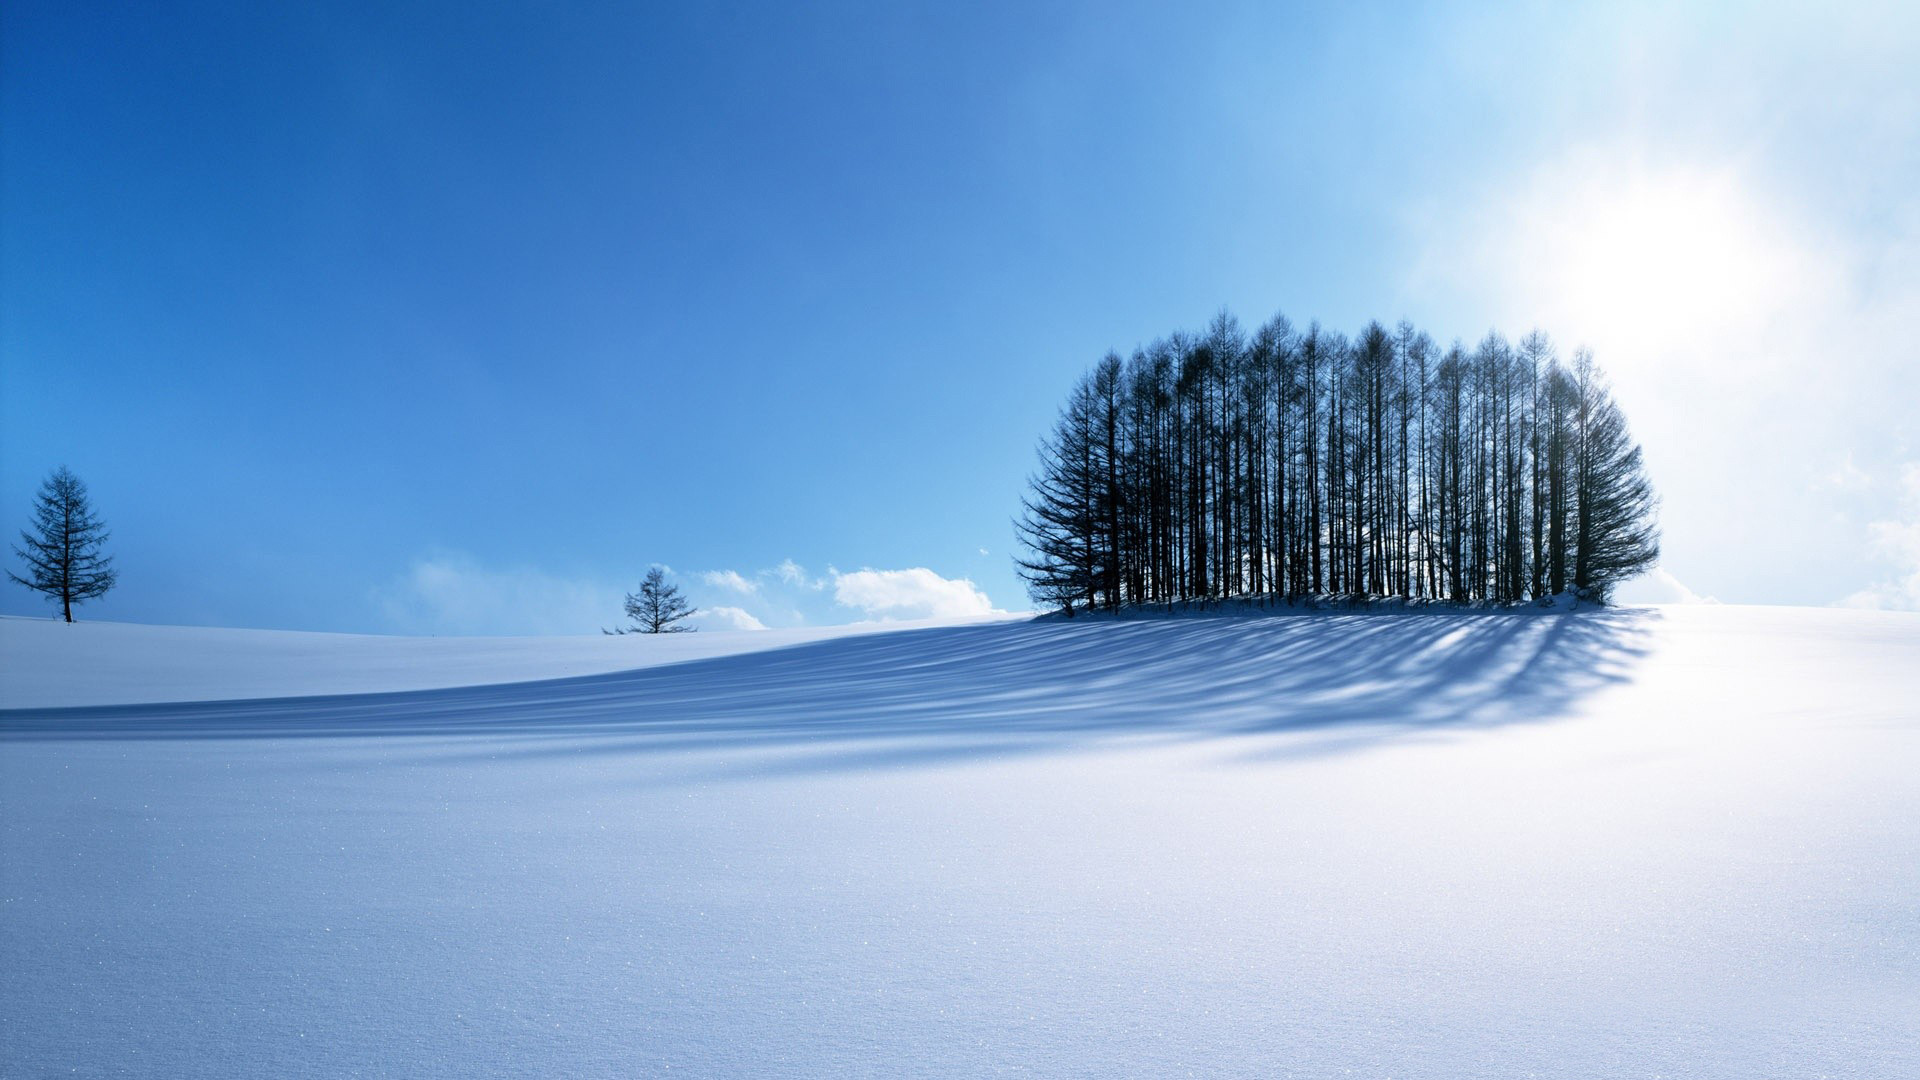 1920x1080 Winter scenery HD pictures.